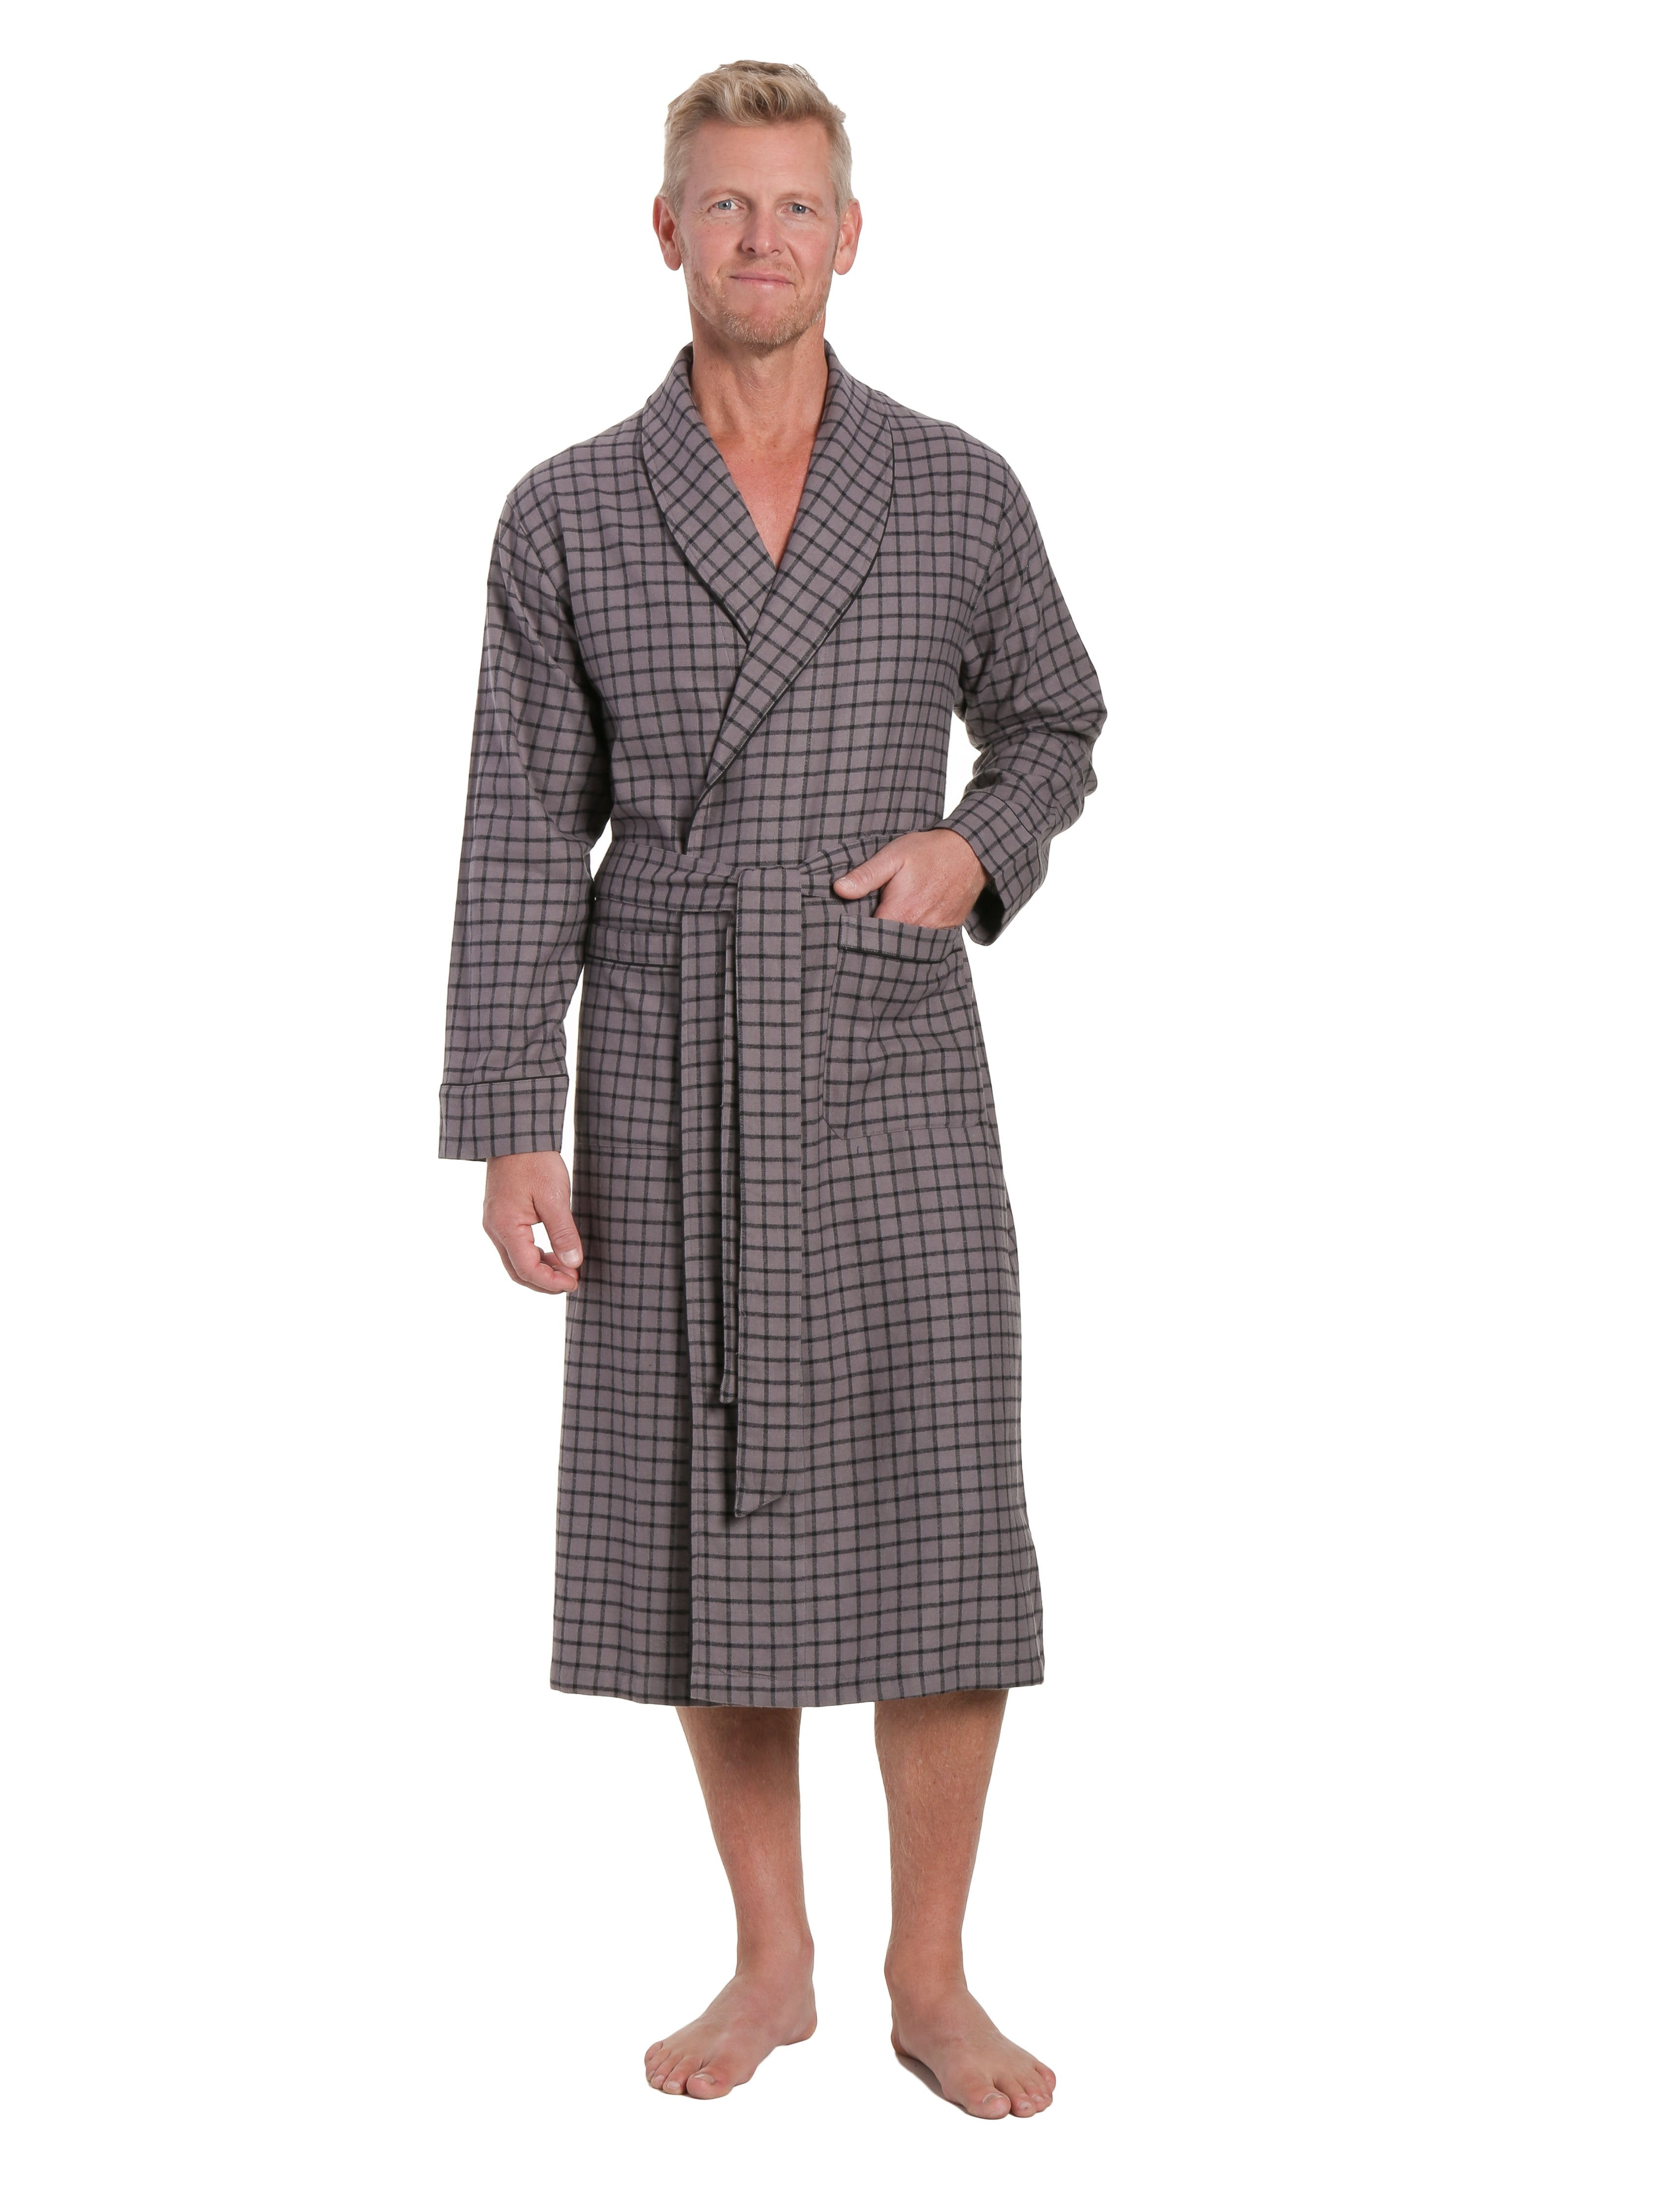 Mens Premium 100% Cotton Flannel Robe - Checks Charcoal-Black